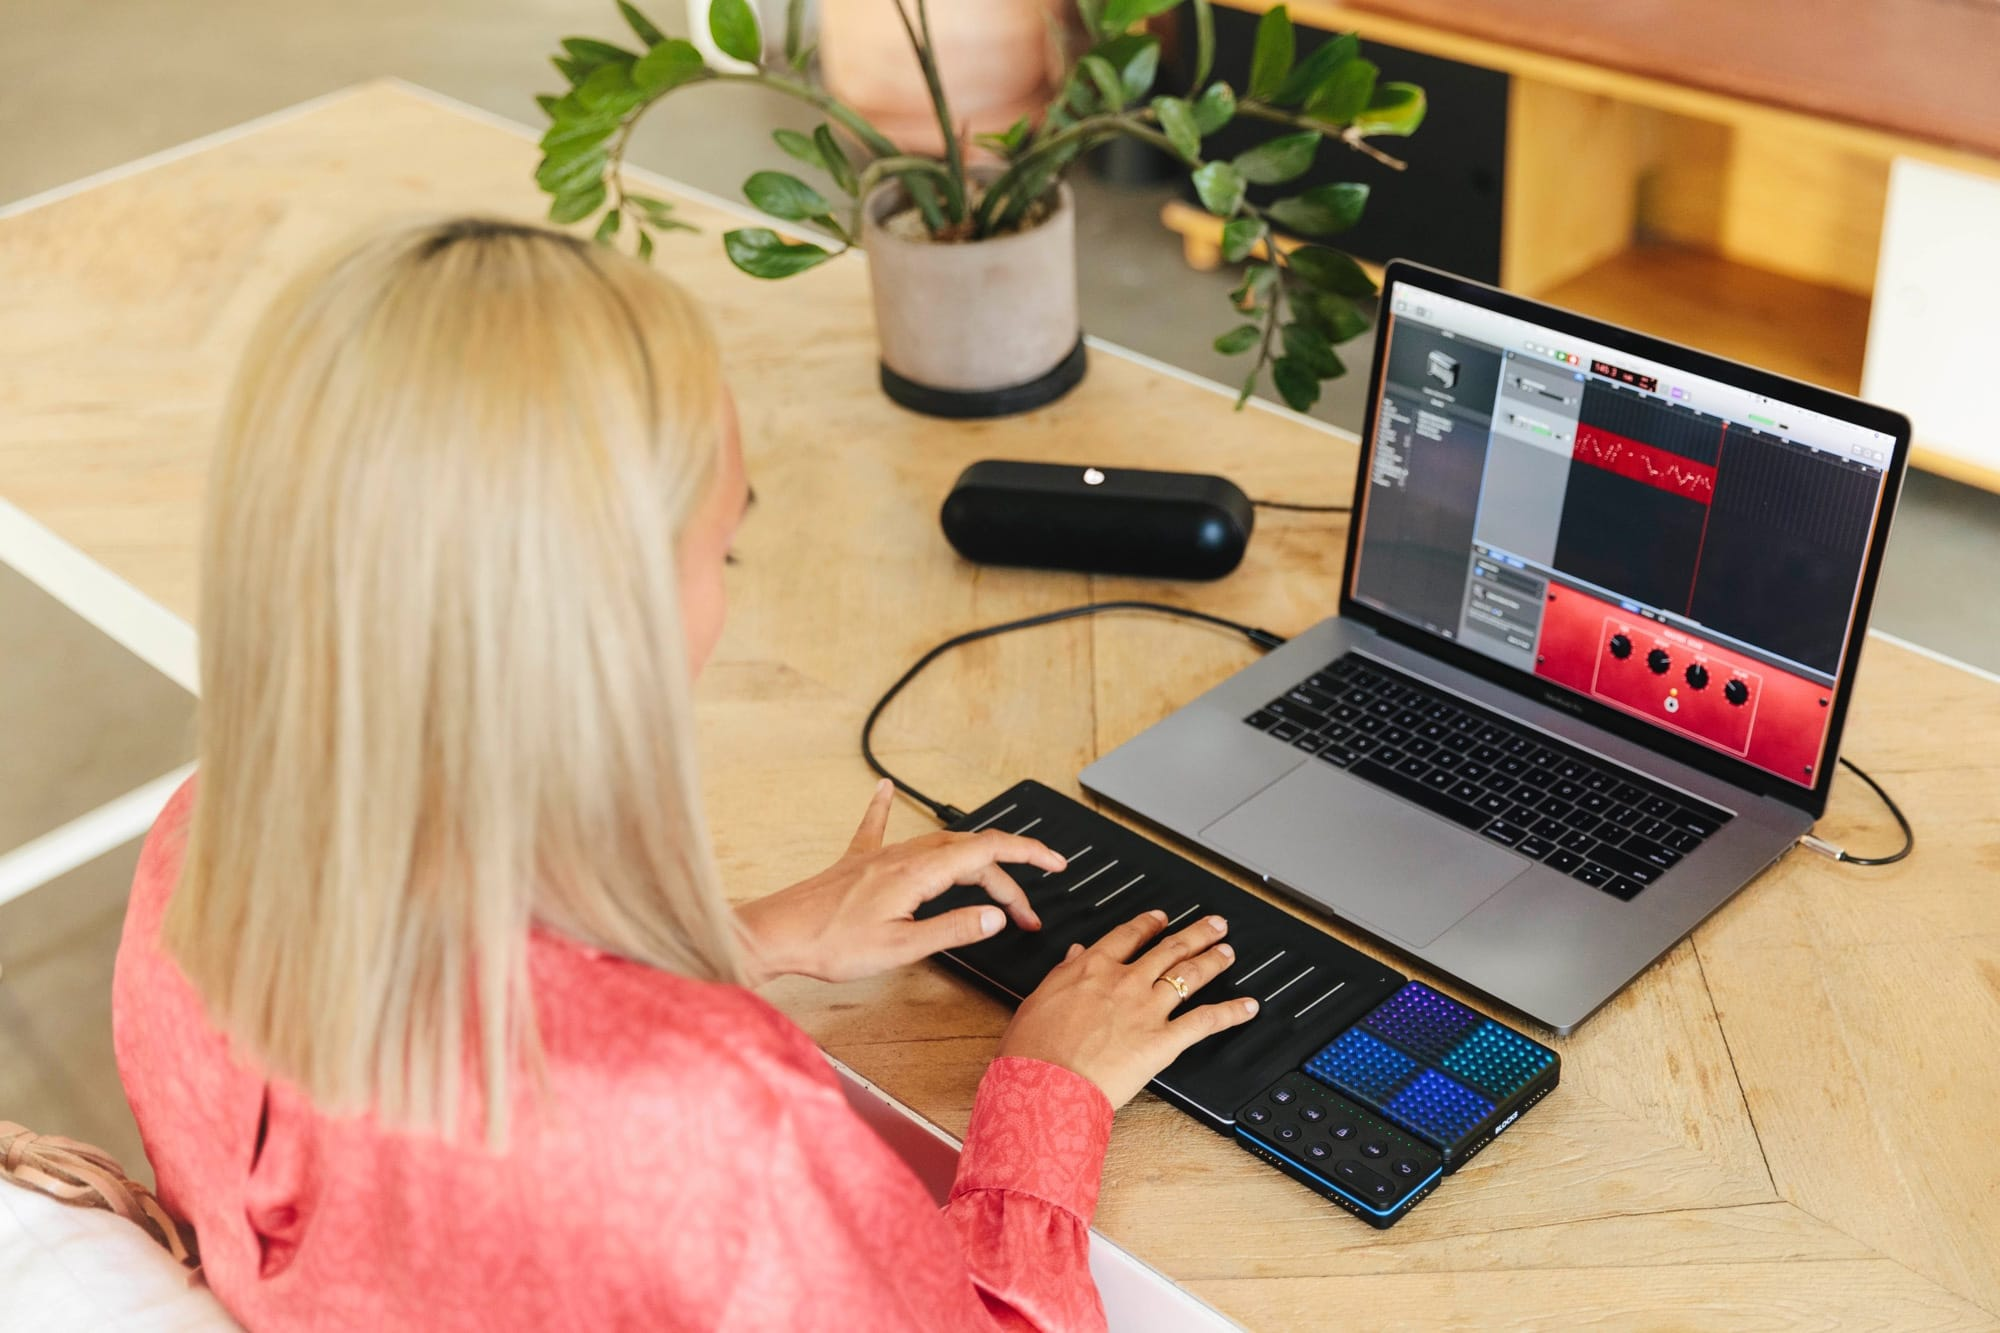 Roli Songmaker Kit Garageband Edition Adds Touch Control To Mac 3 Way Switch